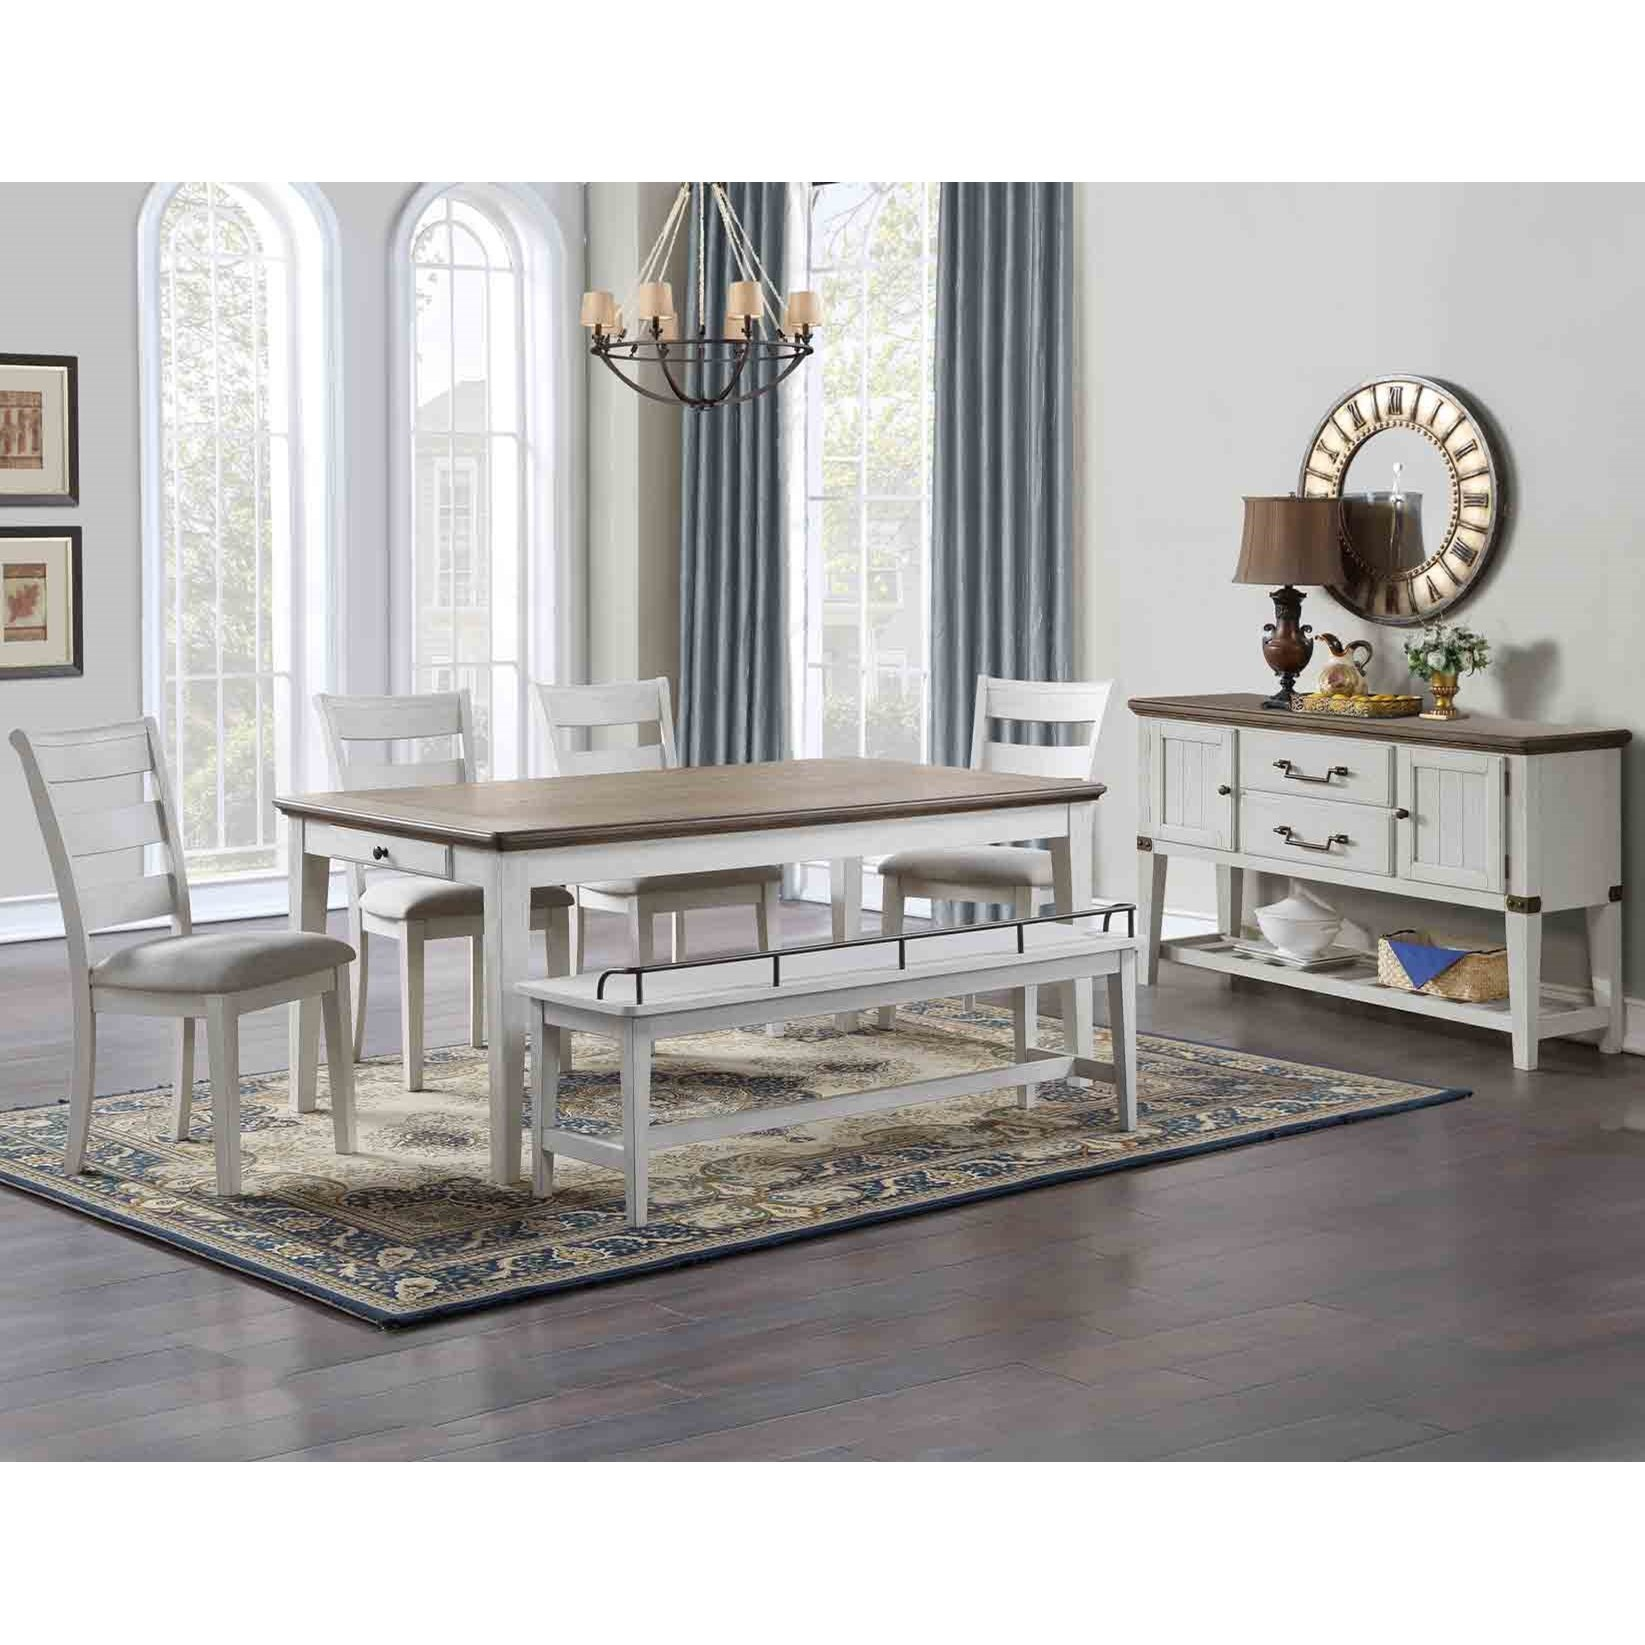 Pendleton Formal Dining Room Group  at Sadler's Home Furnishings